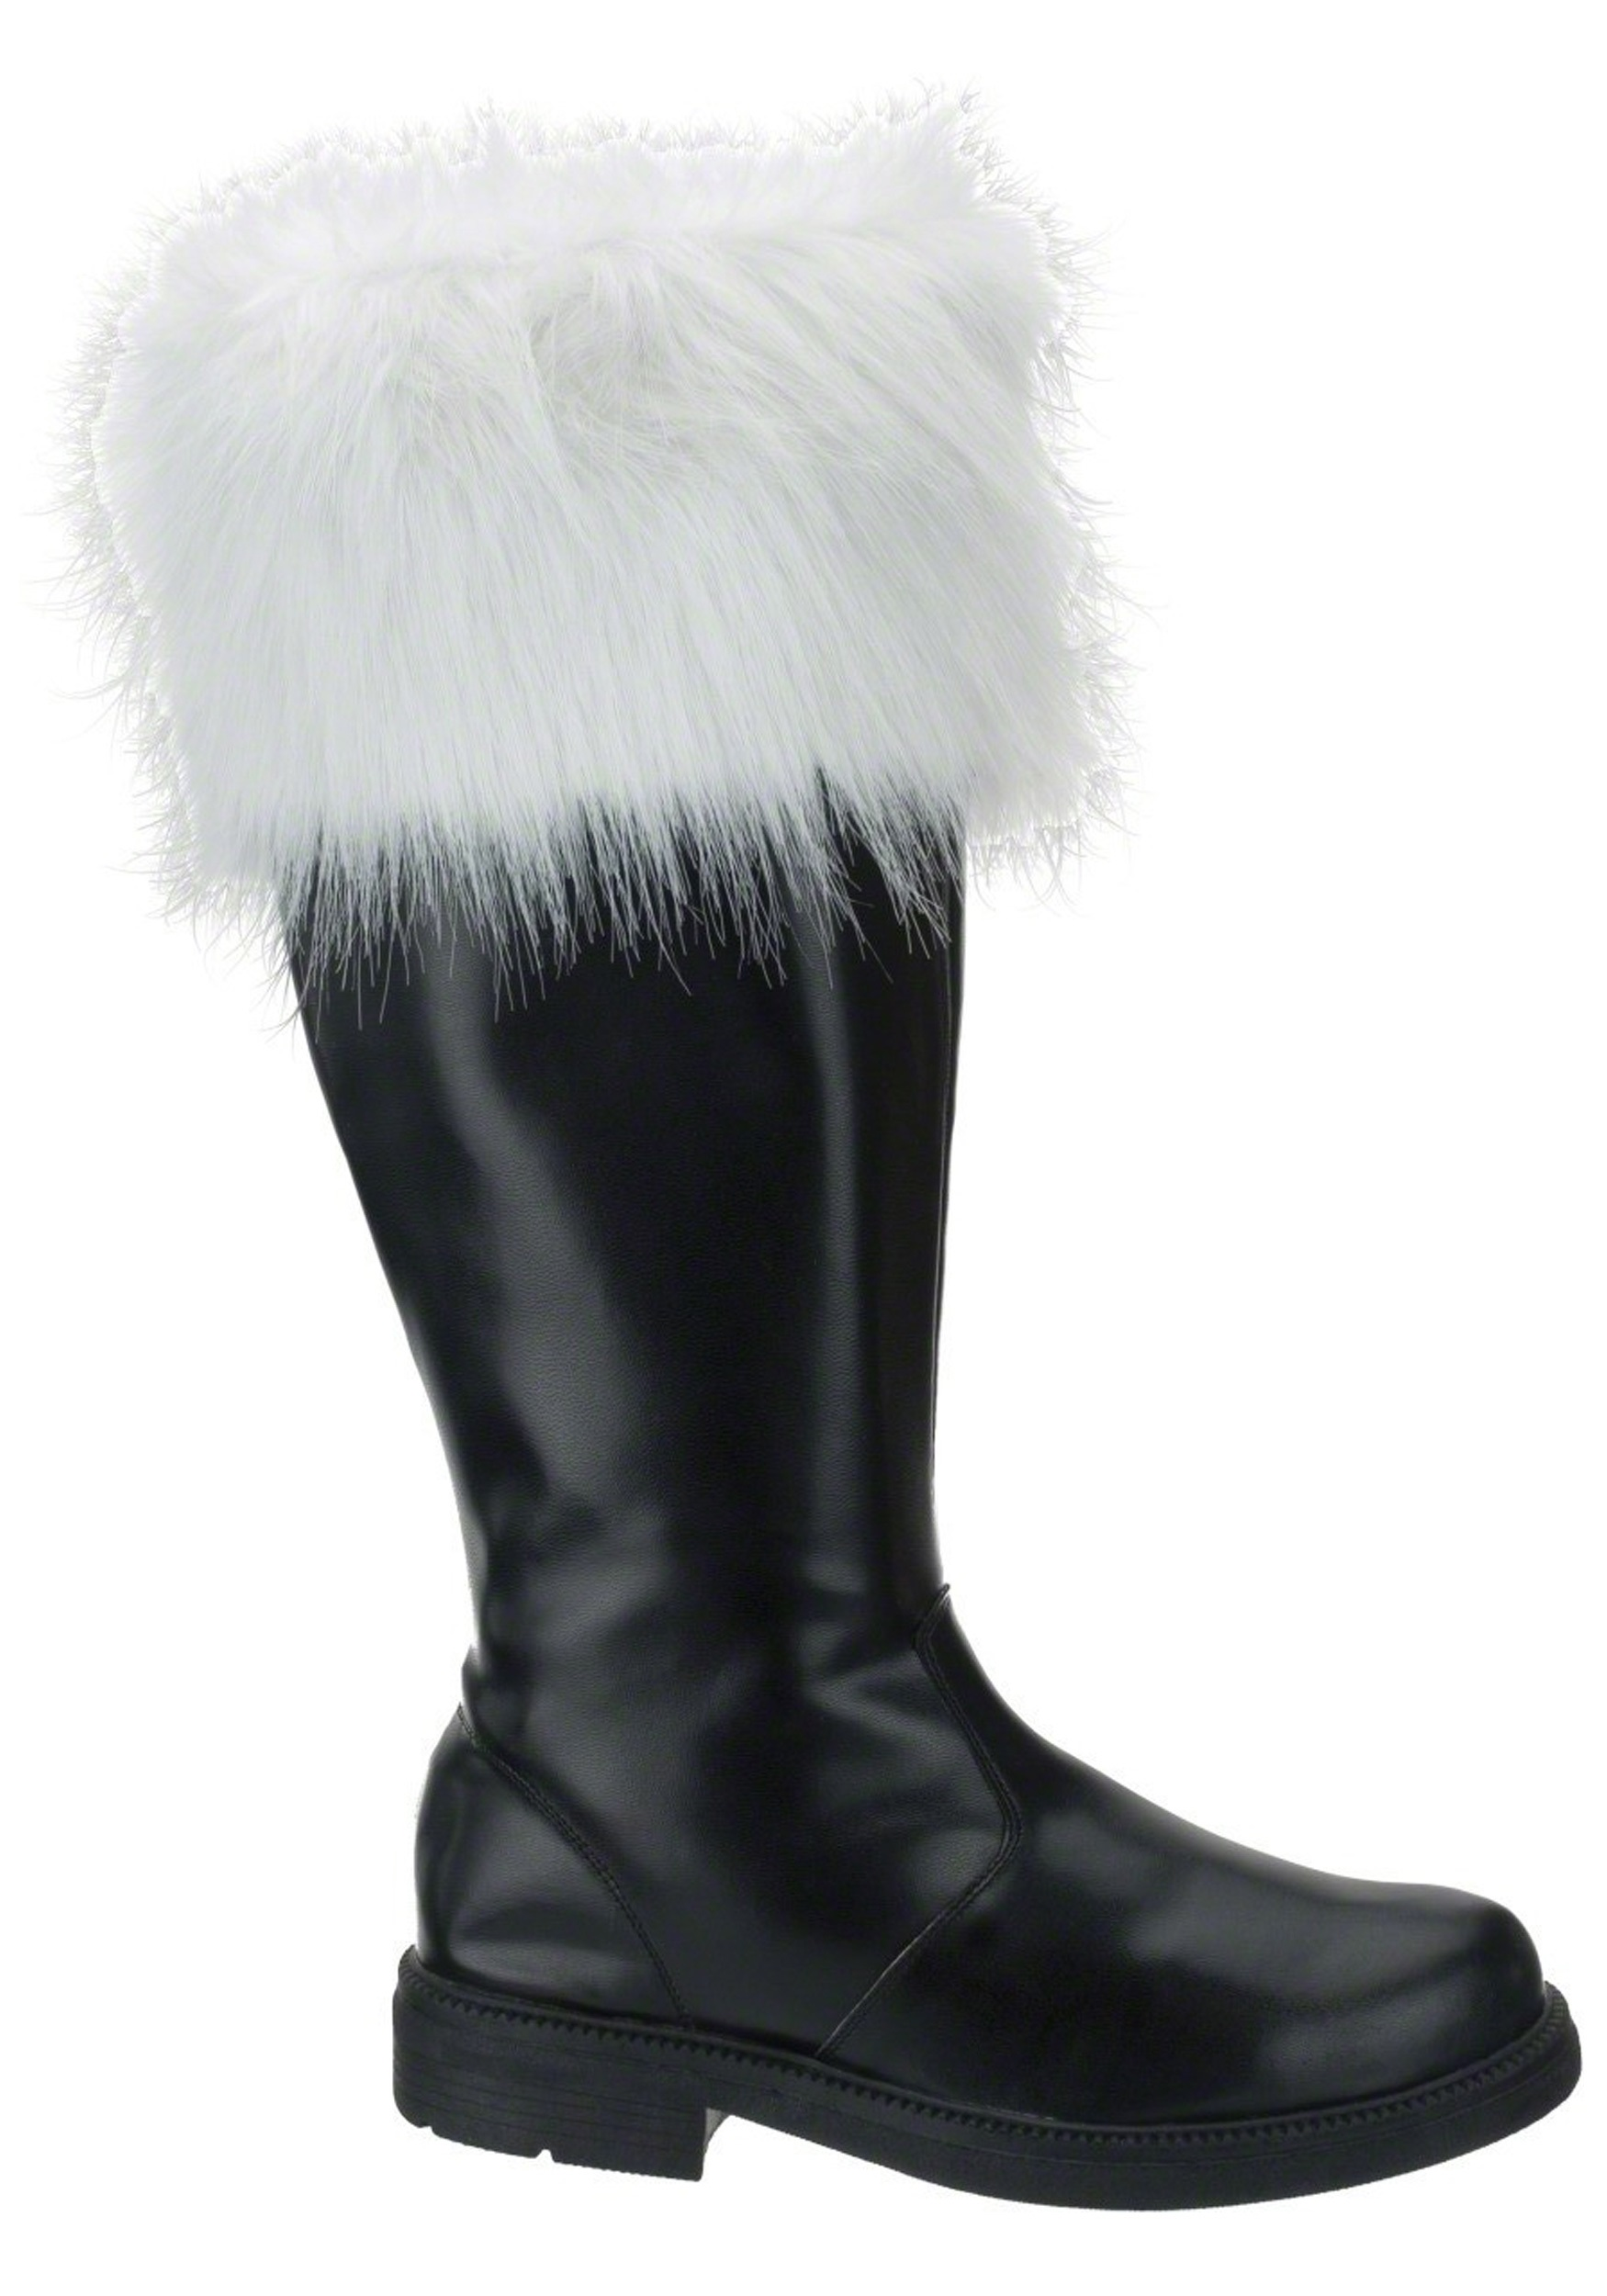 Santa Boot with White Fur Cuff Christmas Black Boots Footwear Party Halloween